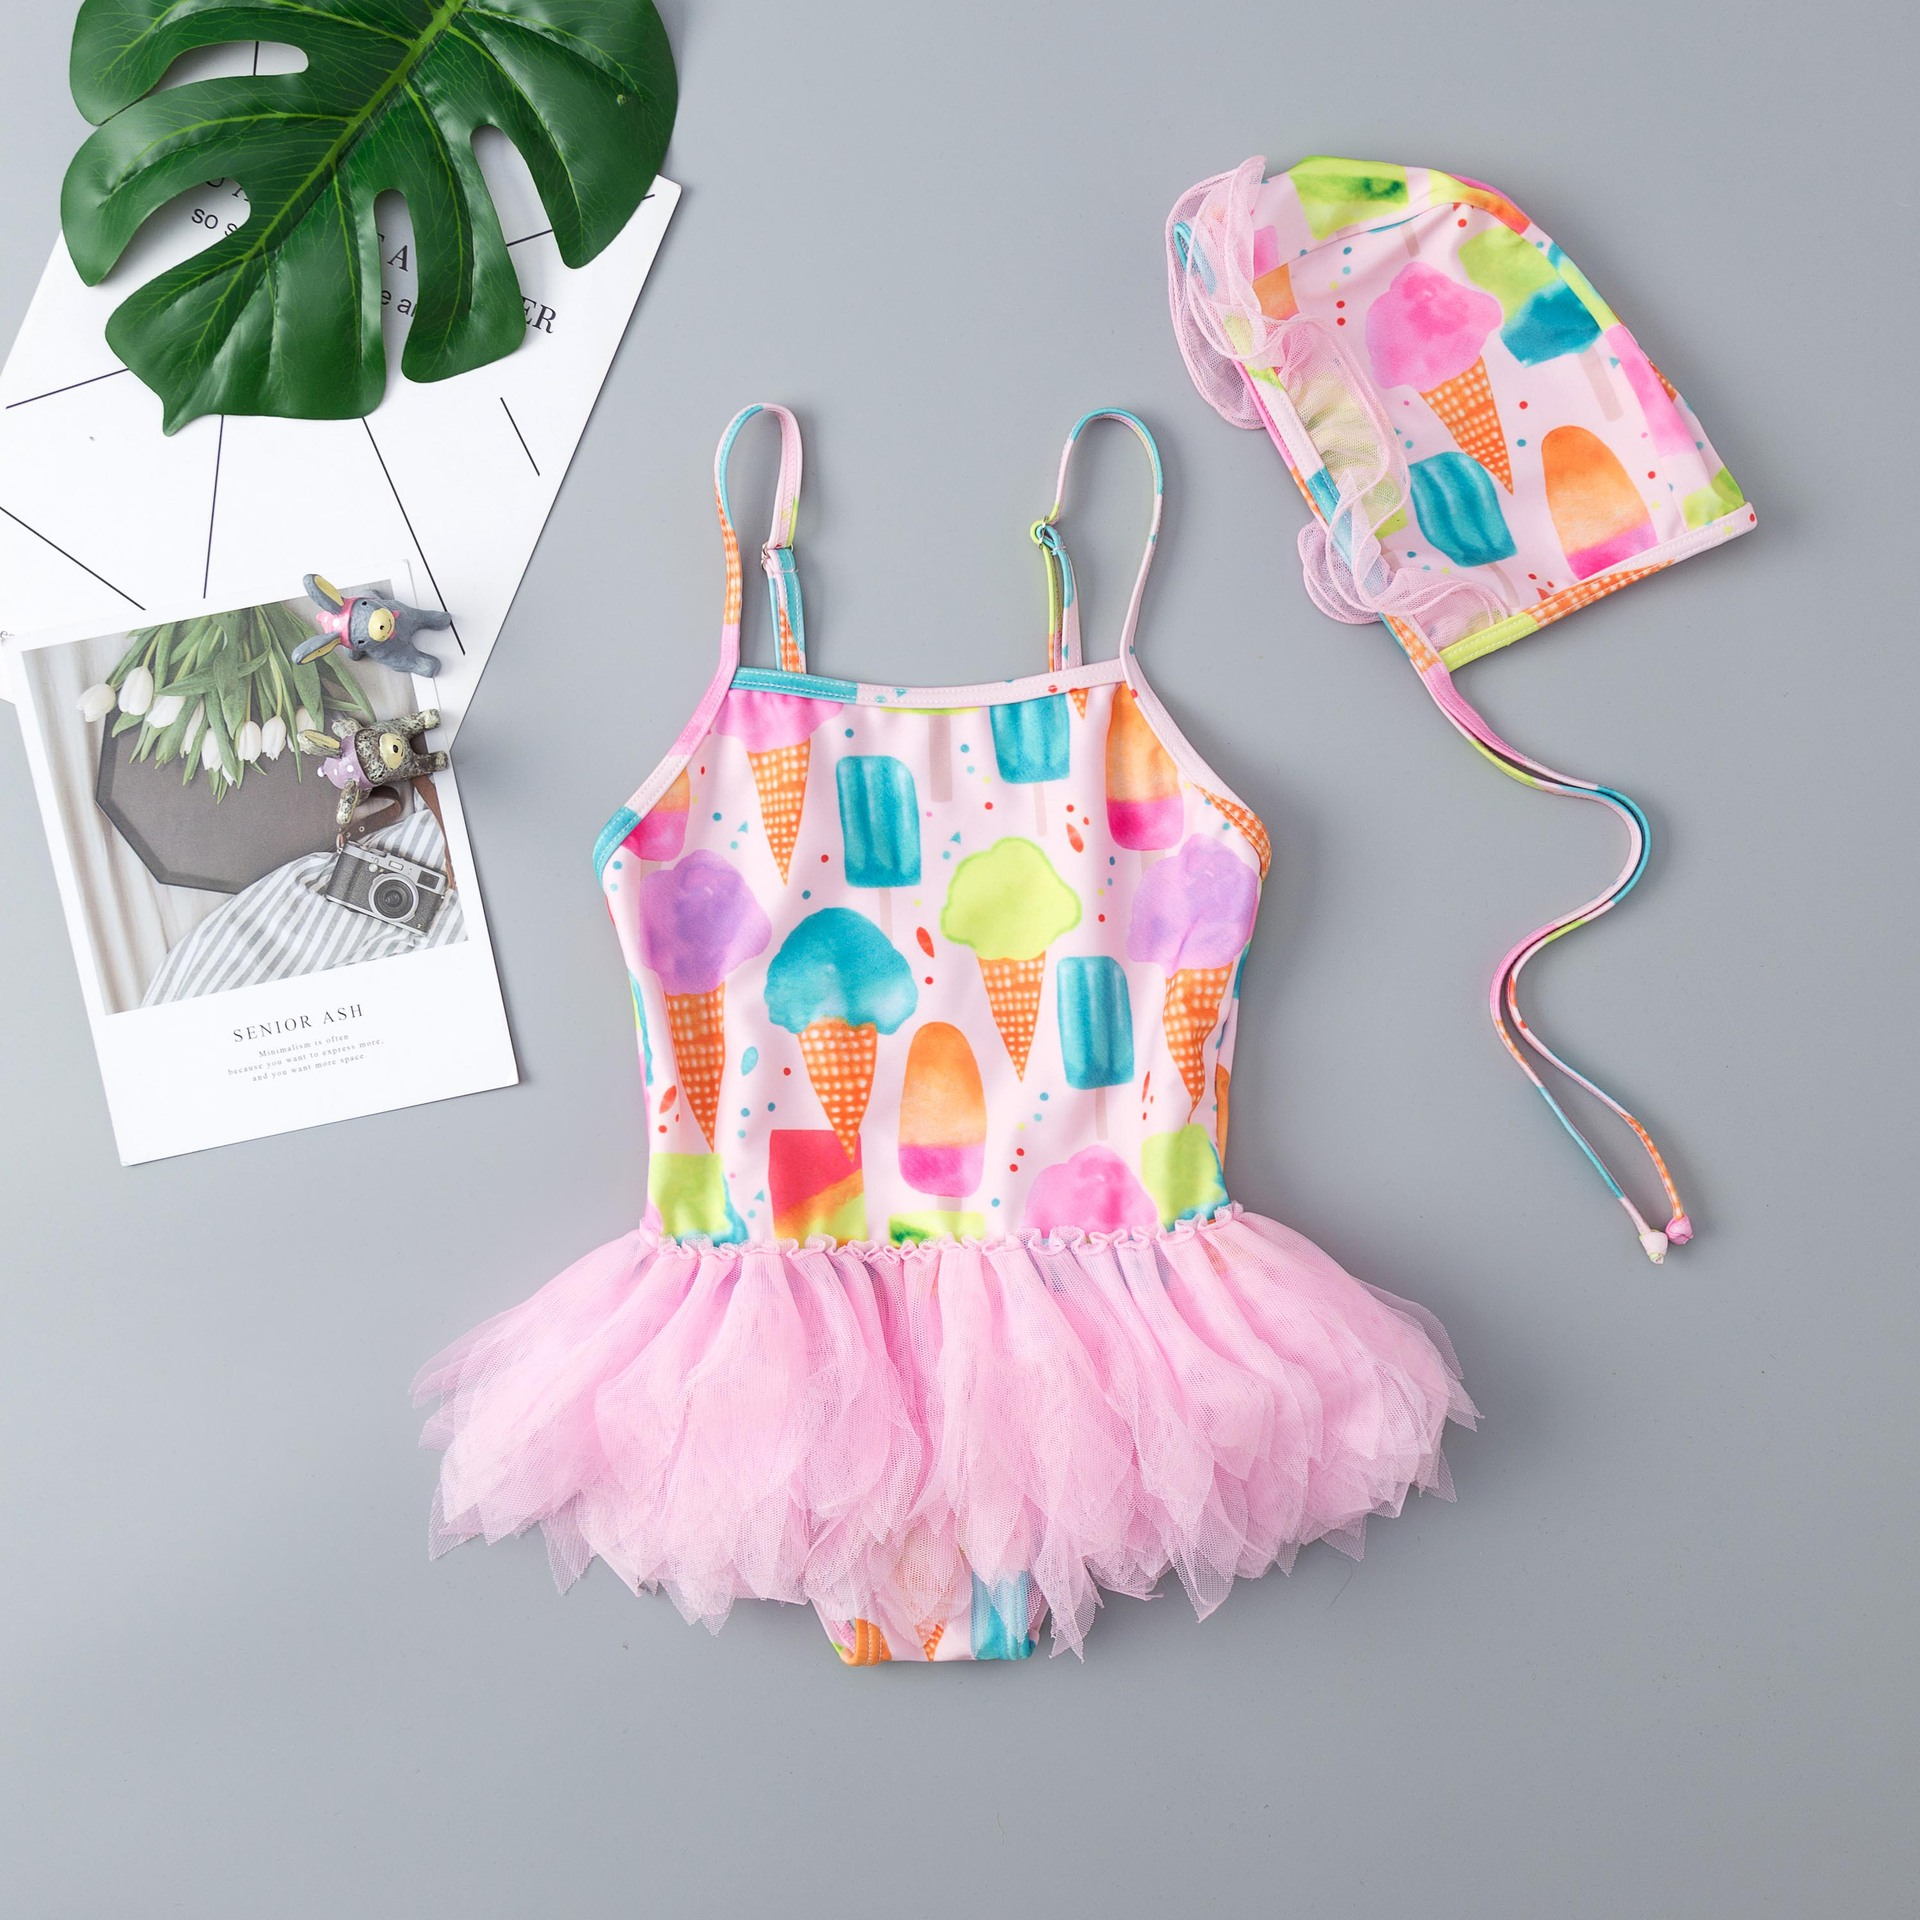 2019 New Style GIRL'S Swimsuit Cute CHILDREN'S Swimwear One-piece Set Children Ice Cream Lace Skirt Swimwear